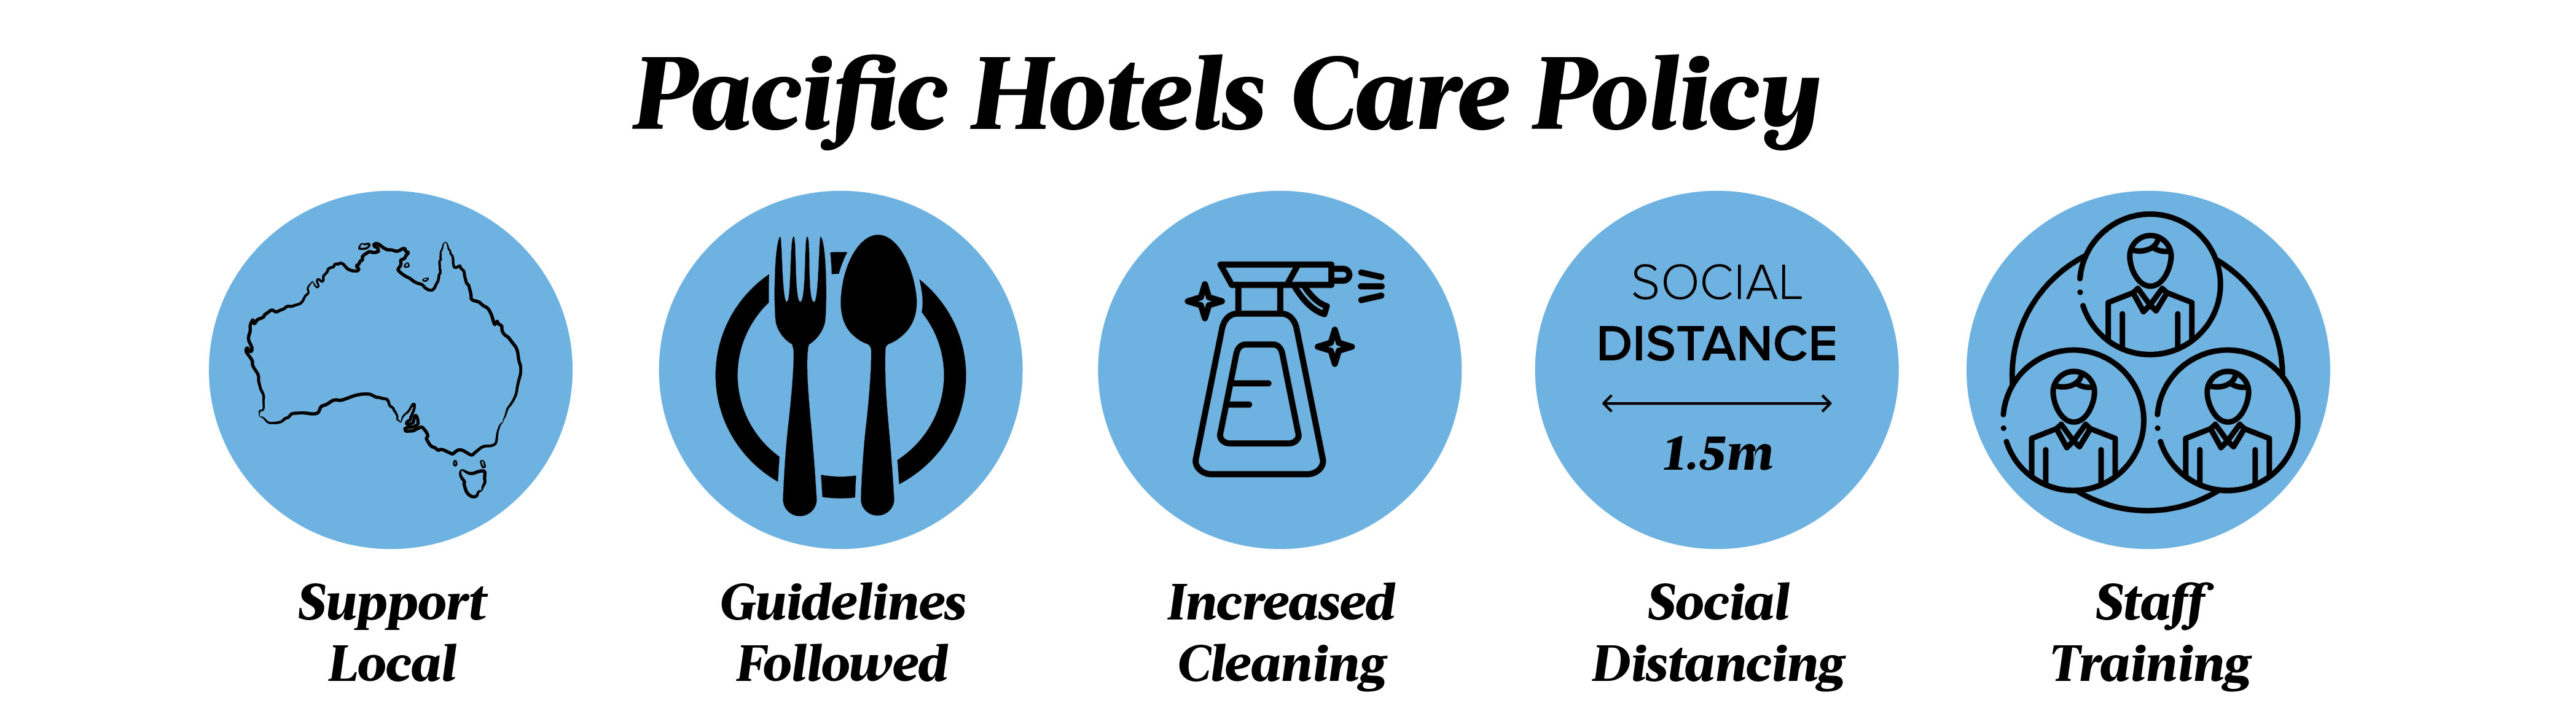 Pacific Hotels Care Policy